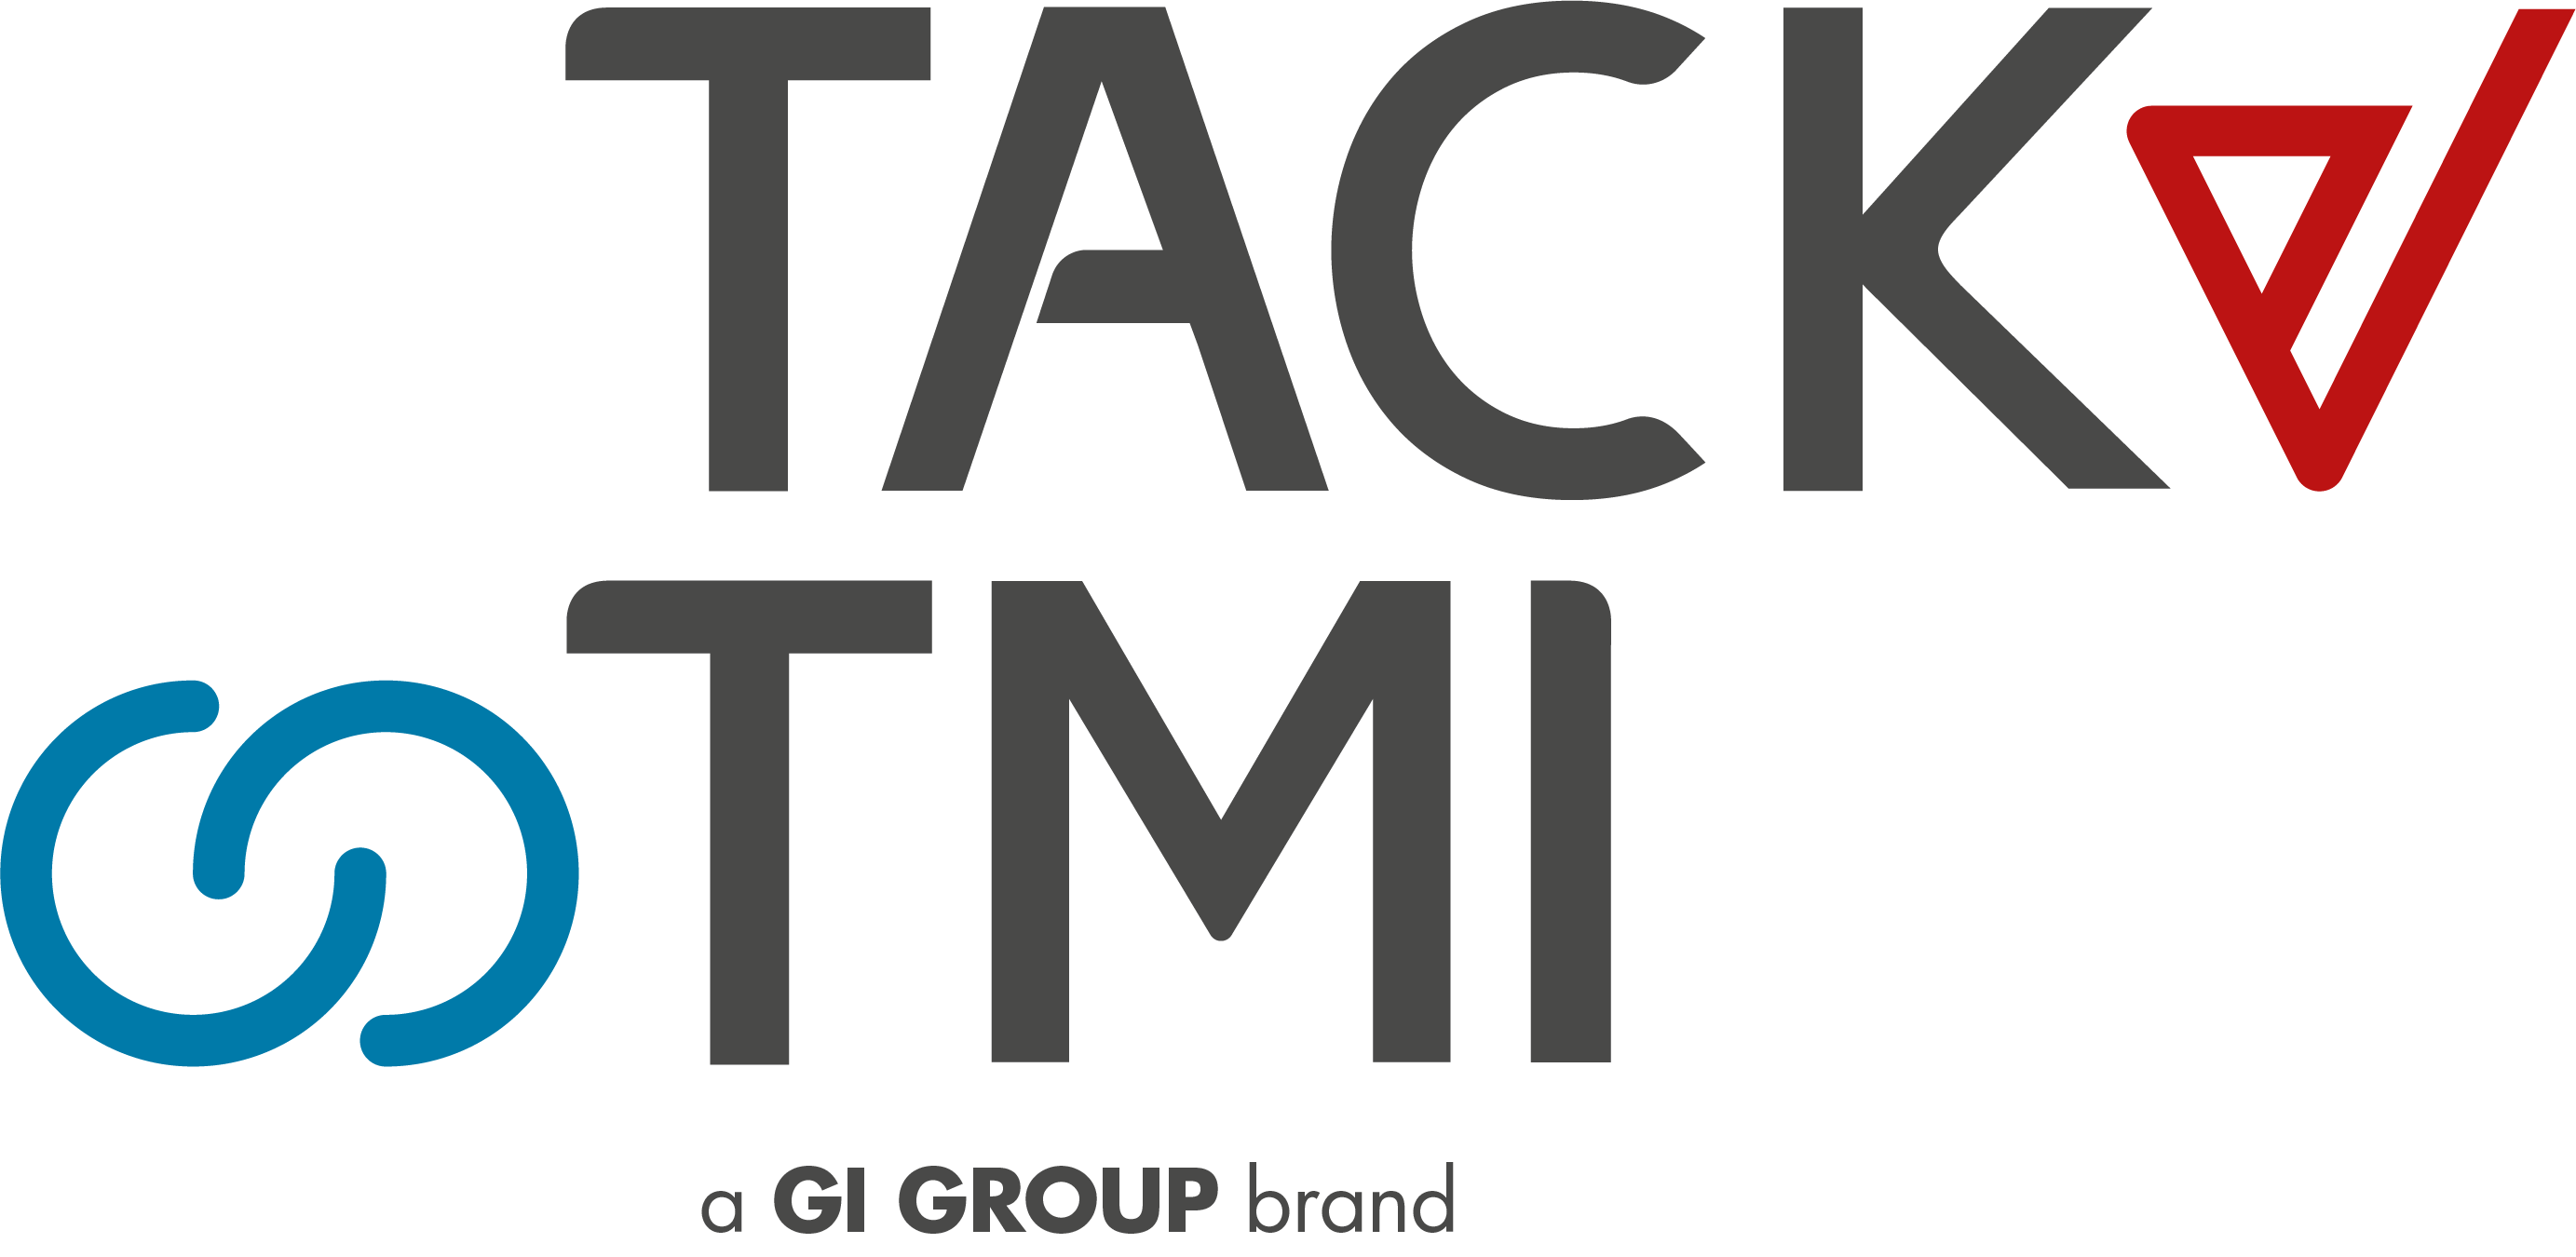 Tack TMI training & consulting brand of Gi Group company